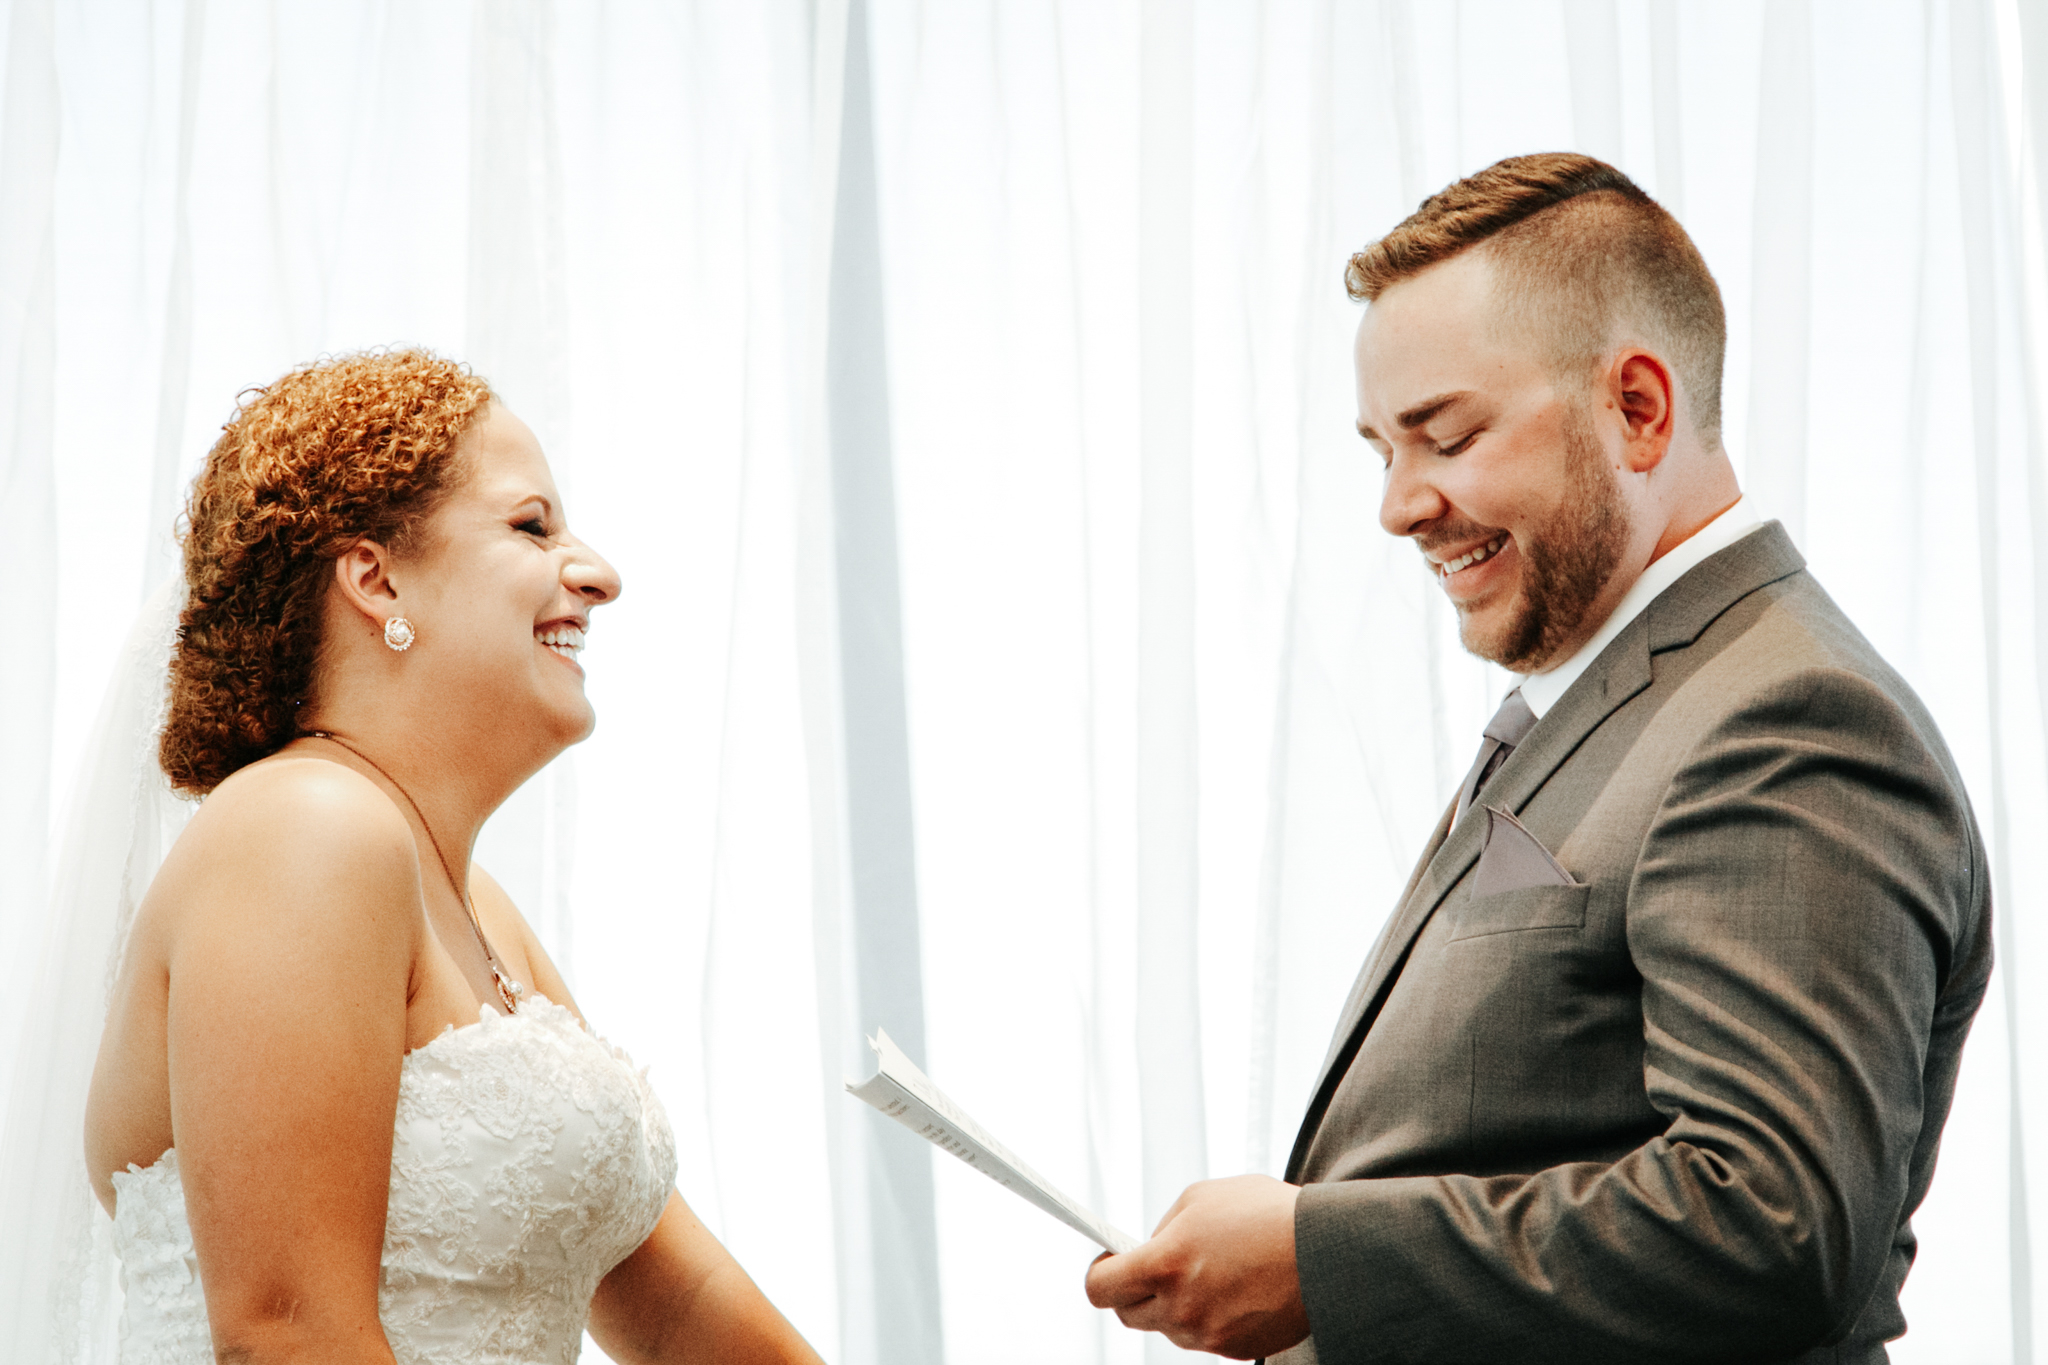 lethbridge-wedding-photographer-love-and-be-loved-photography-trent-danielle-galt-reception-picture-image-photo-53.jpg